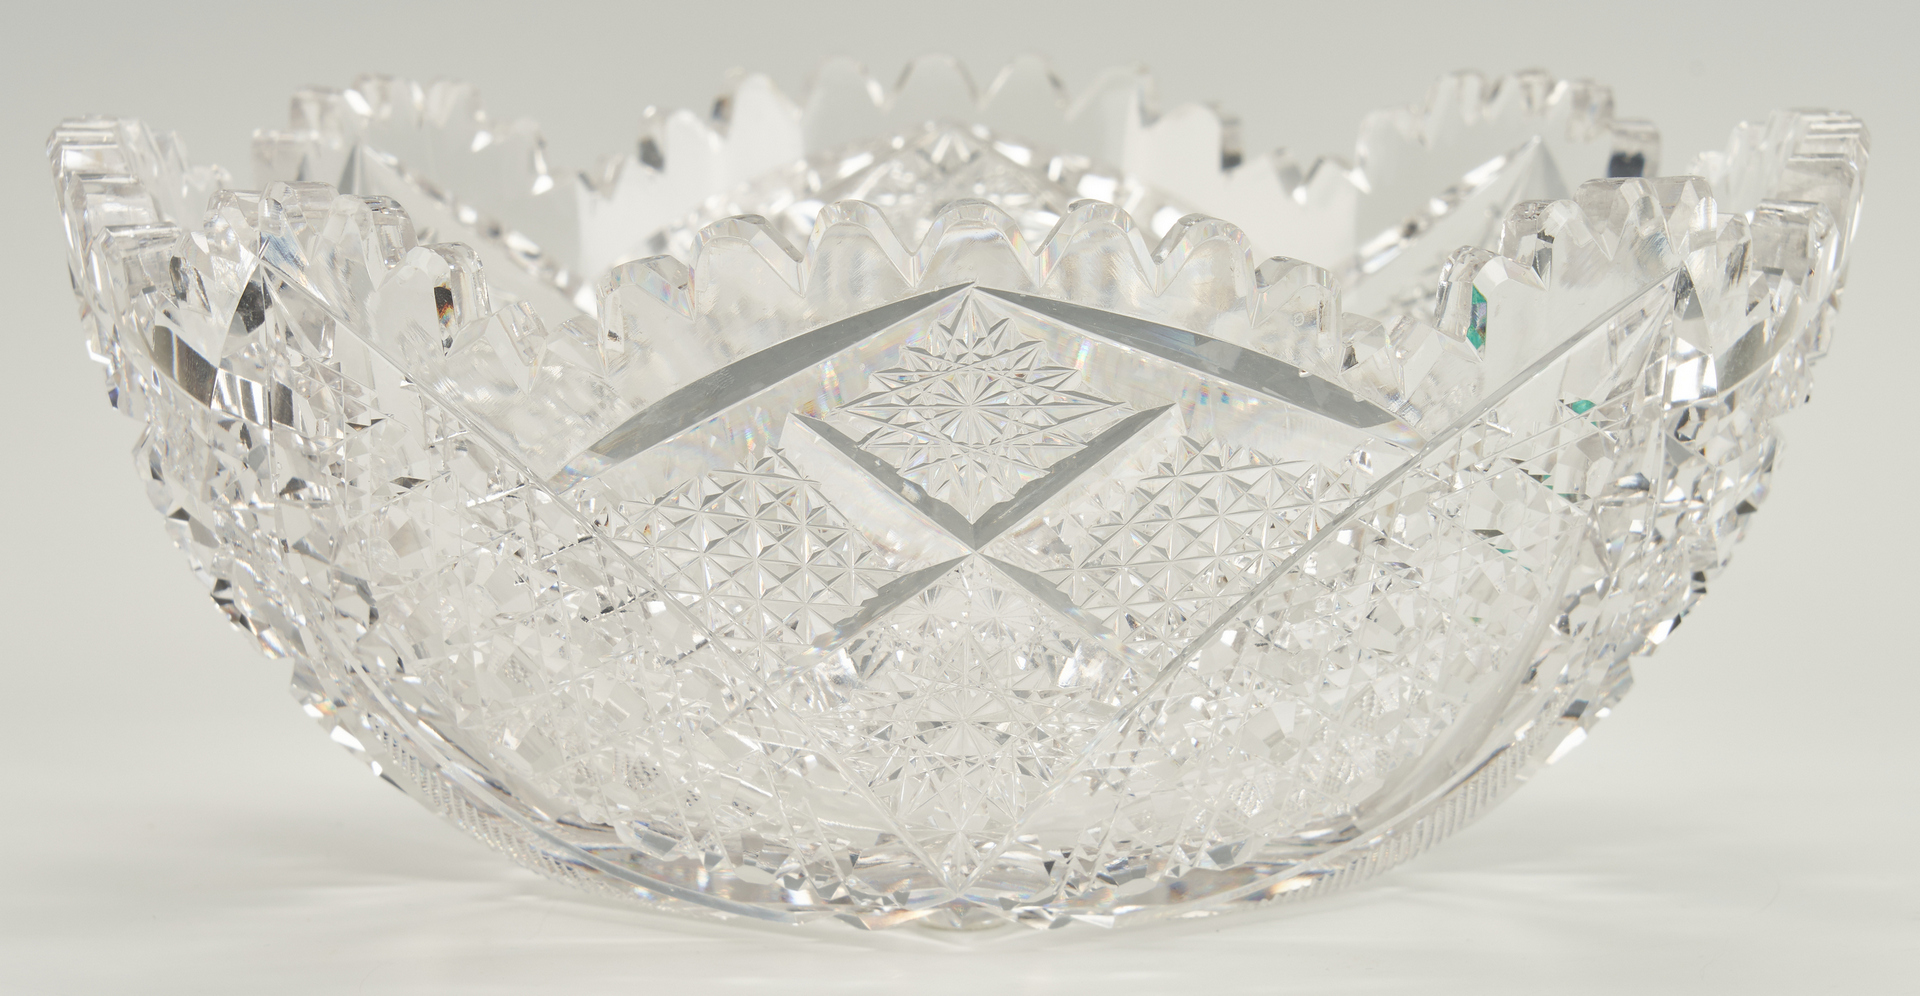 Lot 948: 8 ABPCG Decorative Items, incl. Bowls, Vases